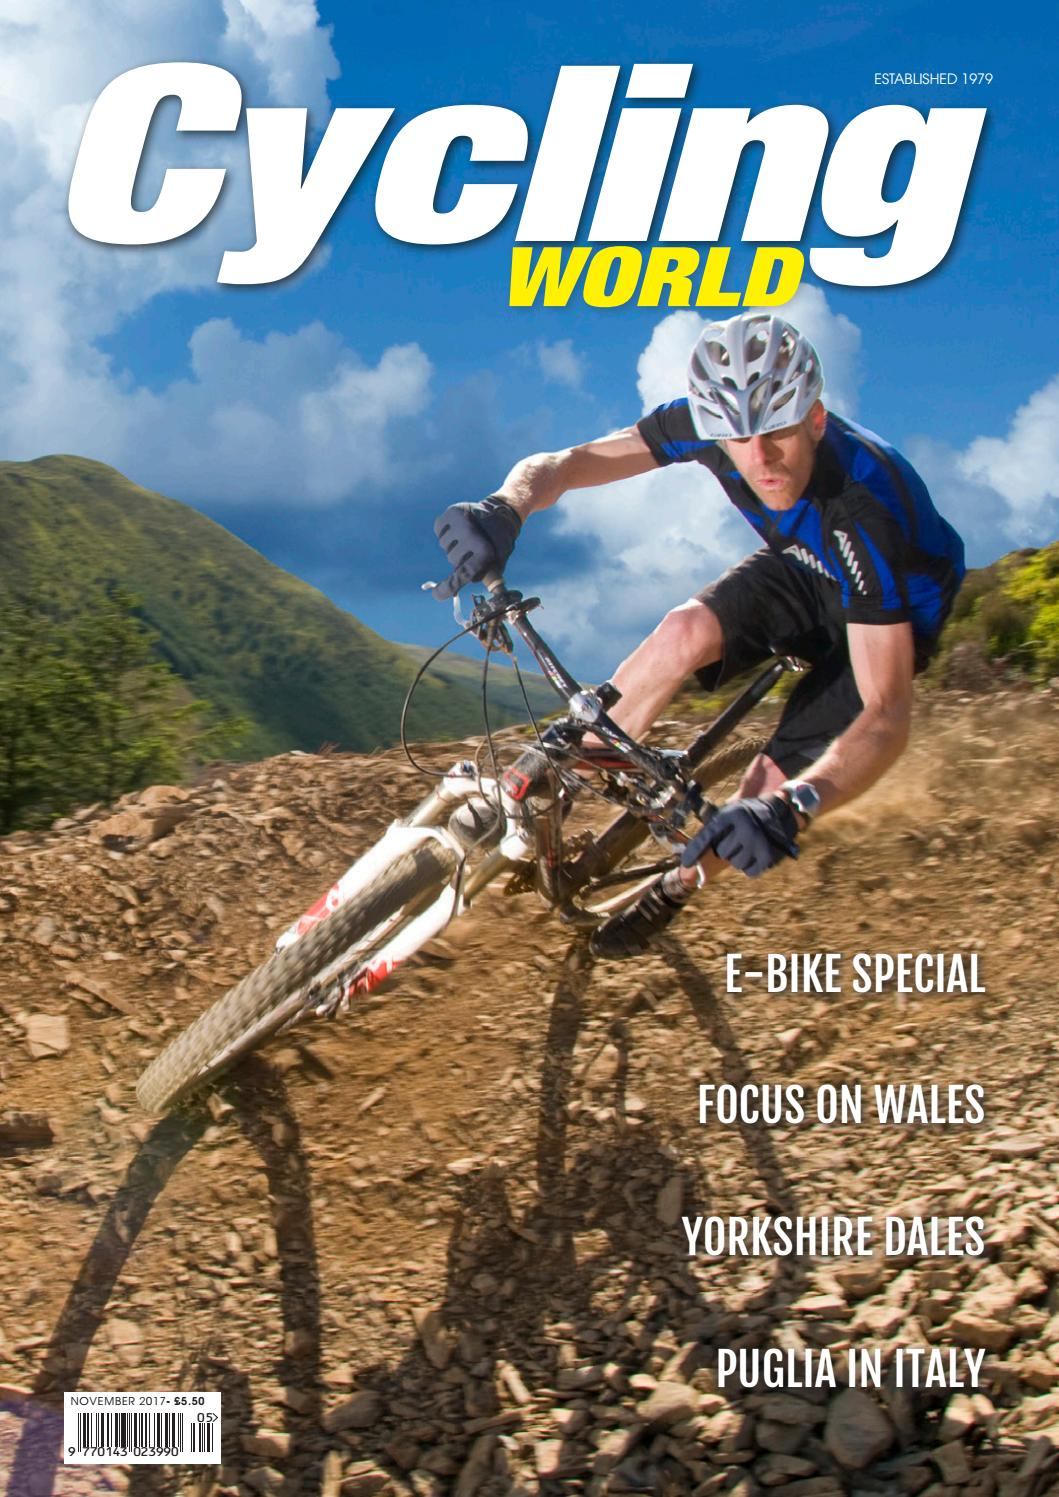 Cycling World November 2017 by Cycling World issuu